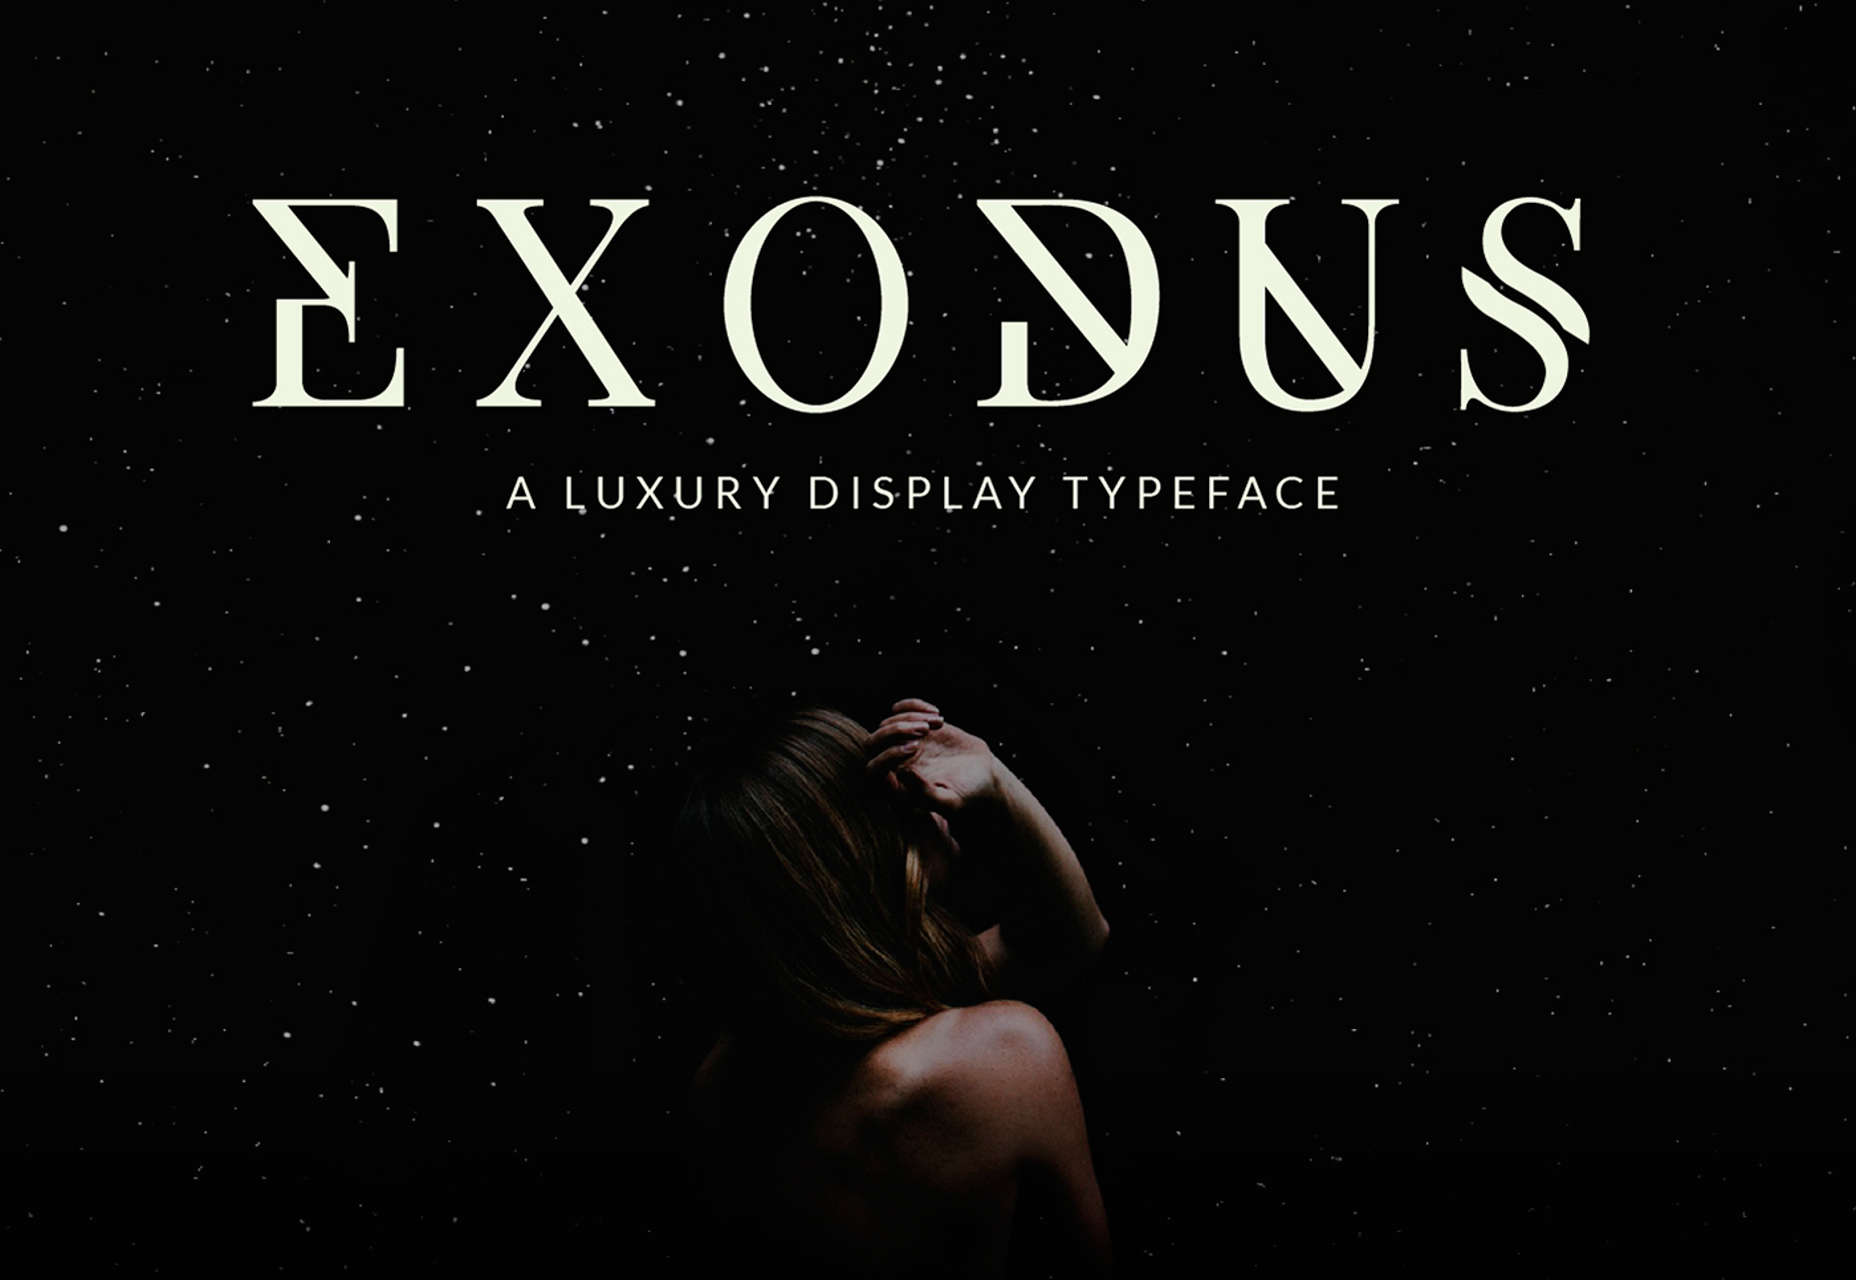 exodus-luxury-6-style-display-typeface